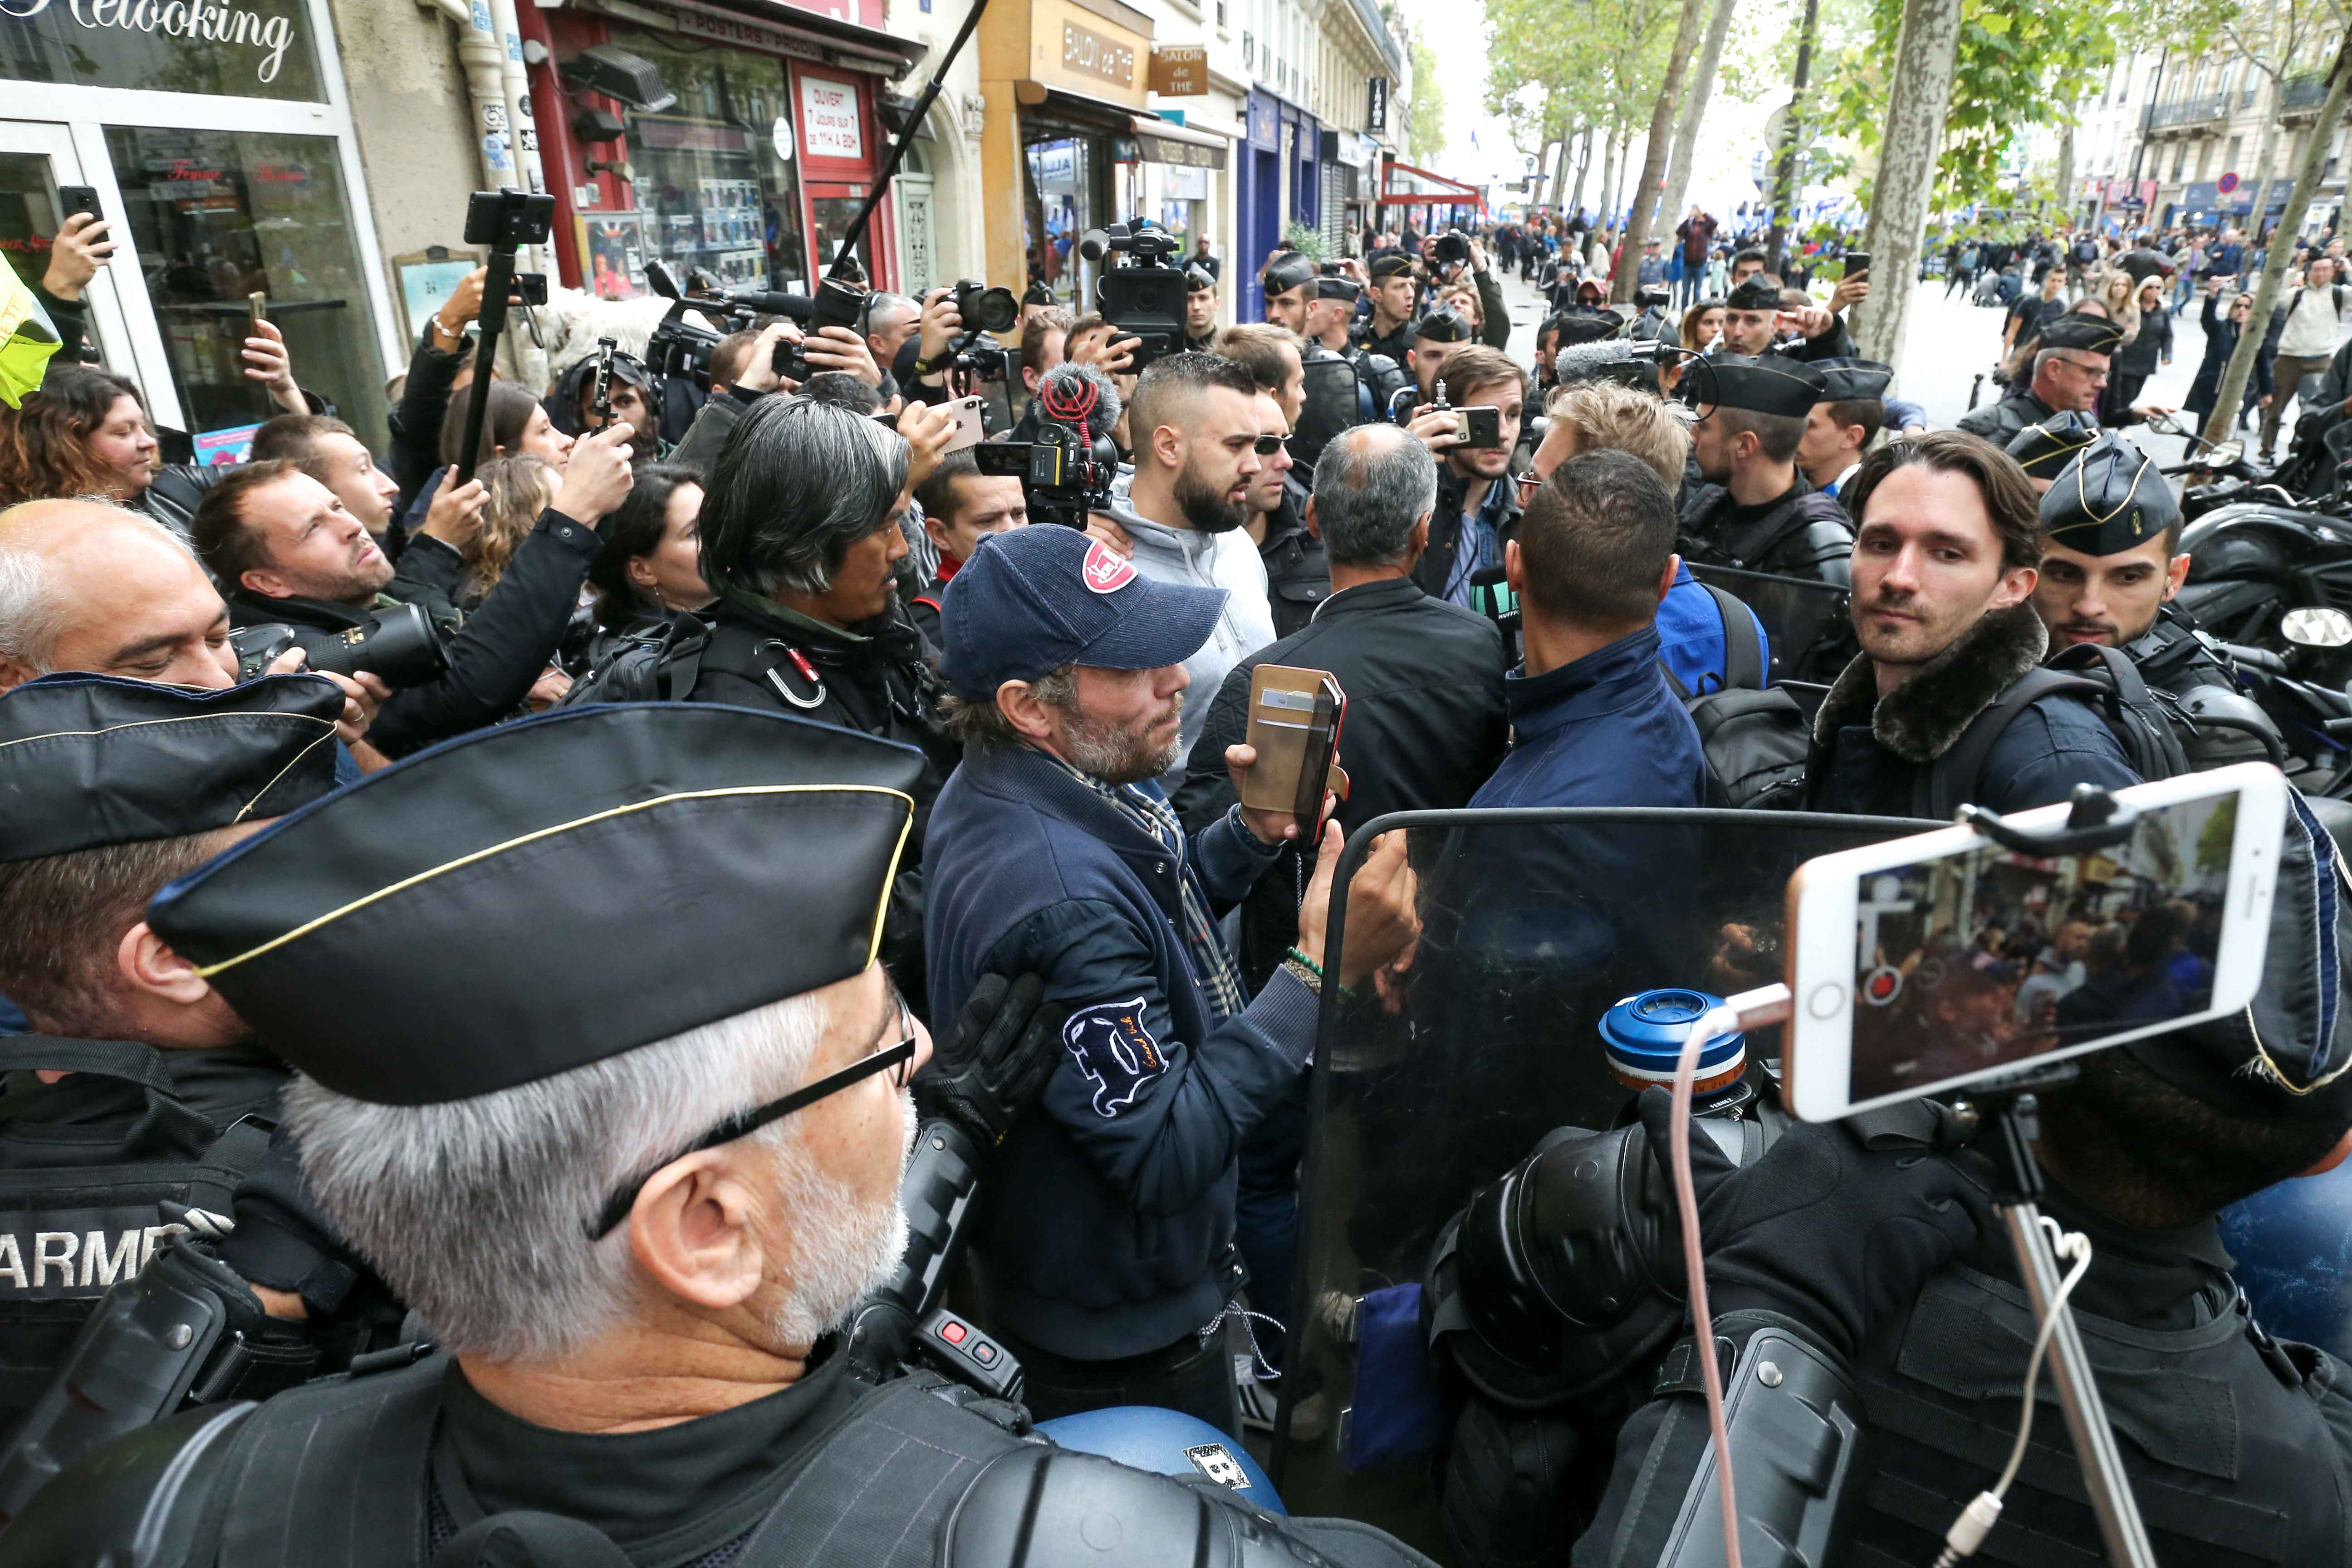 Eric Drouet (C, grey sweatshirt), one of the leading figures of the 'Yellow Vest' (gilet jaune) movement, speaks to journalists during the ''Walk of Wrath'' of the Policemen in Paris (France) on October 2, 2019. At the call of the National Police unions, s